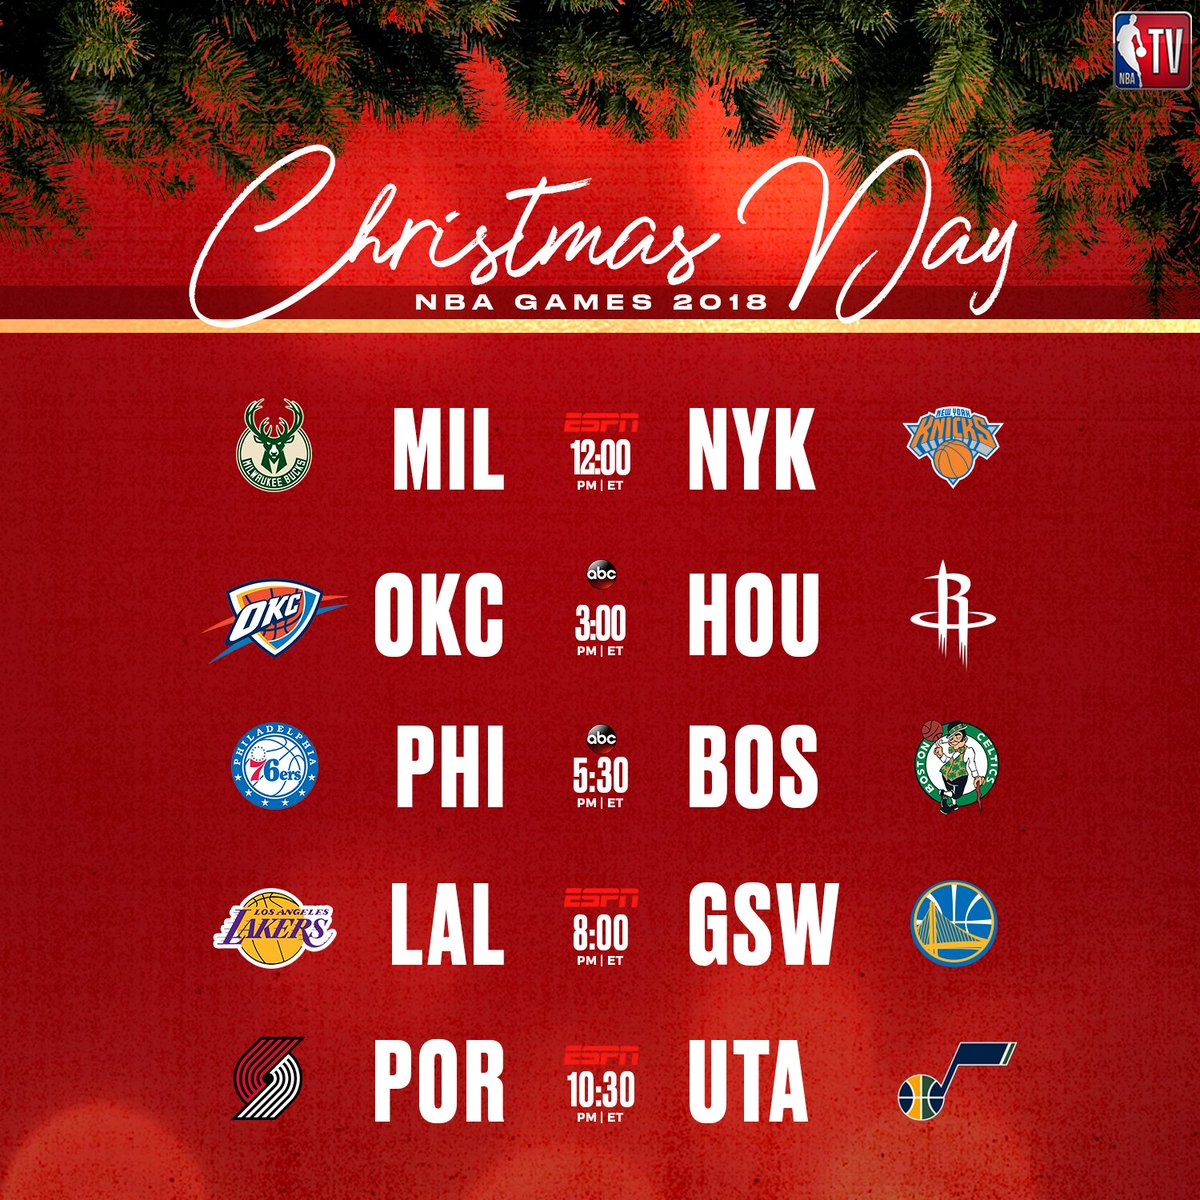 nba tv on twitter a look at the 2018 christmas day games around the nba - Christmas Day Games